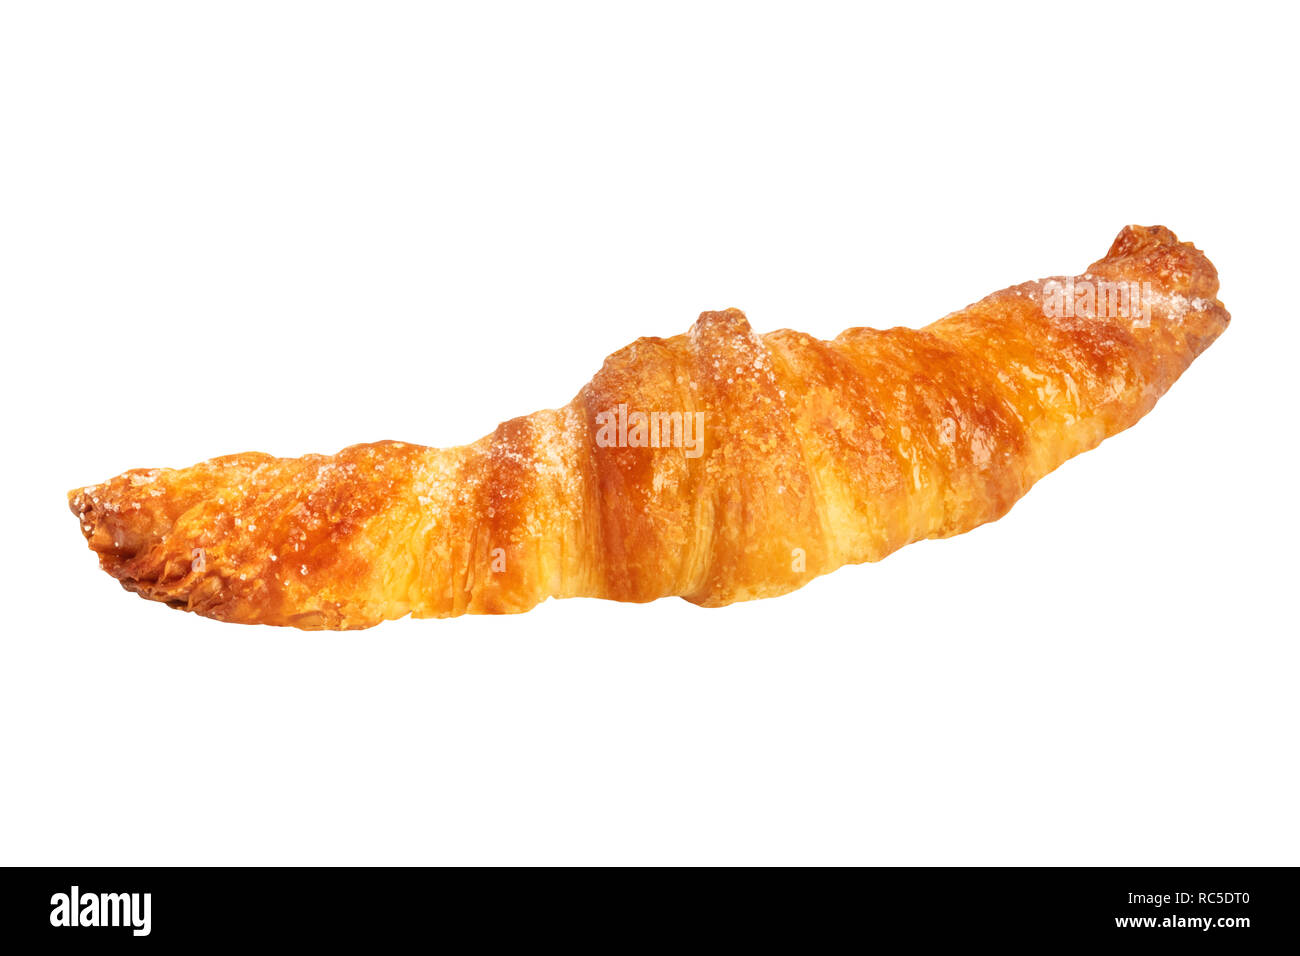 A croissant, isolated on a white background with a clipping path - Stock Image